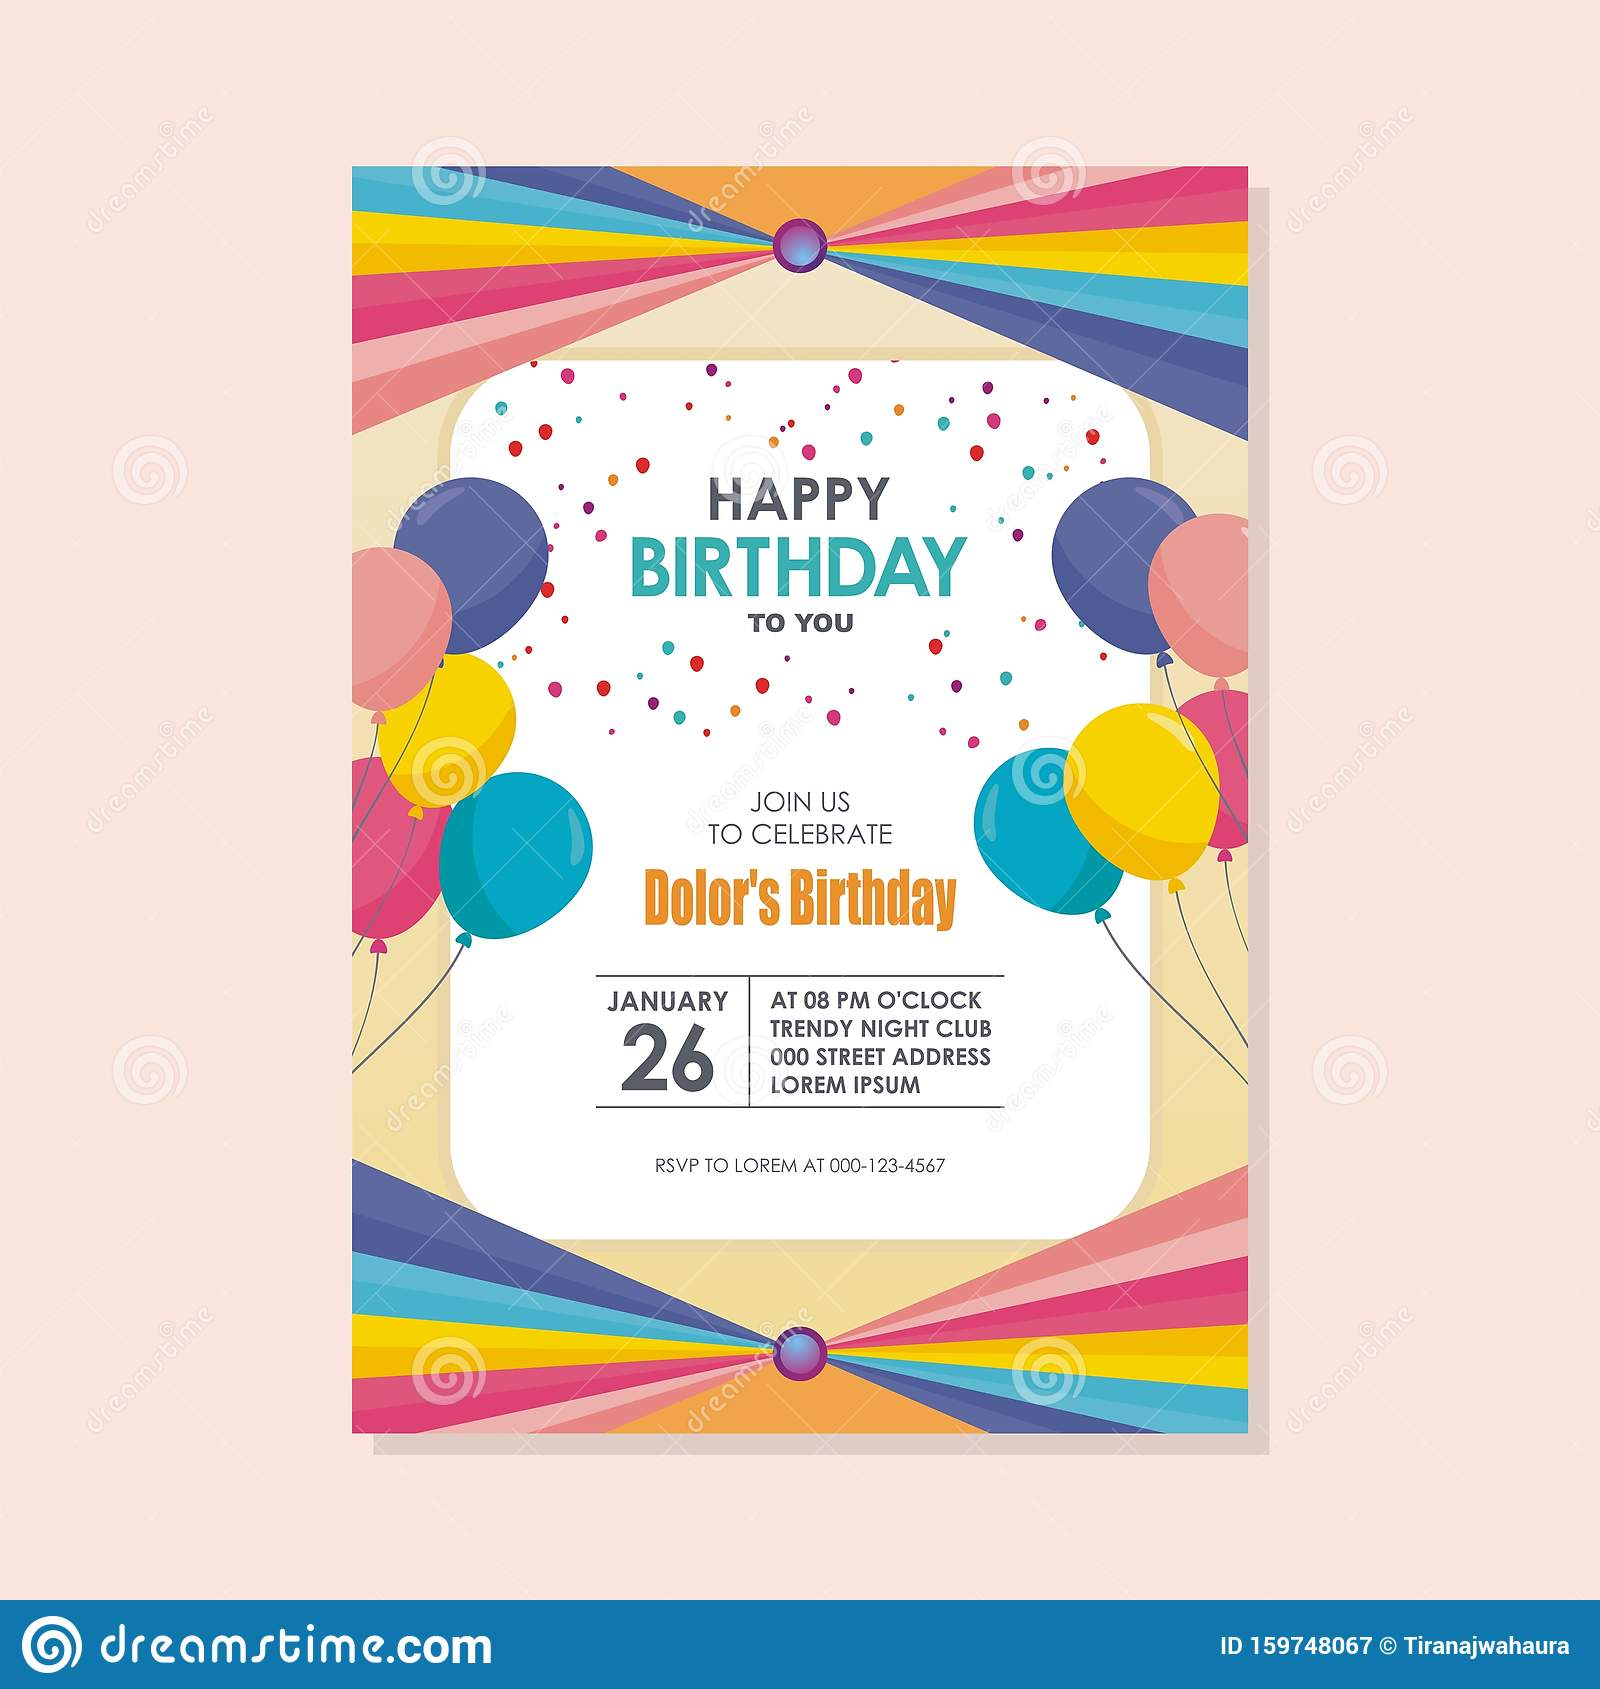 Happy Birthday Card Template Design With Trendy And Cute Design Stock Vector Illustration Of Dots Border 159748067